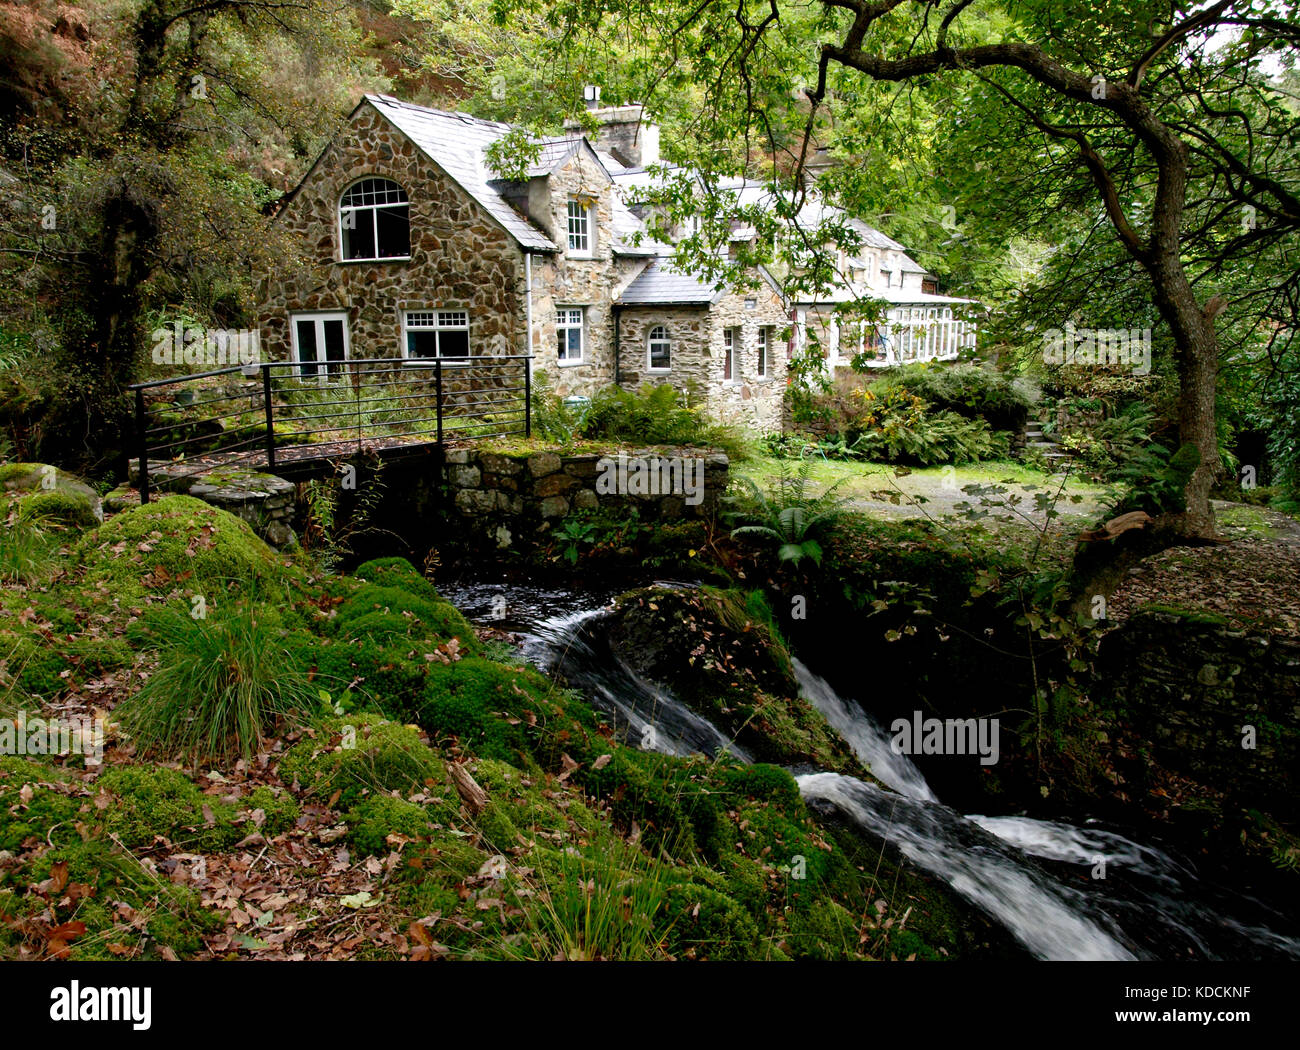 Stone House In The Woods Next To A River Gwynedd Snowdonia National Park North Wales UK